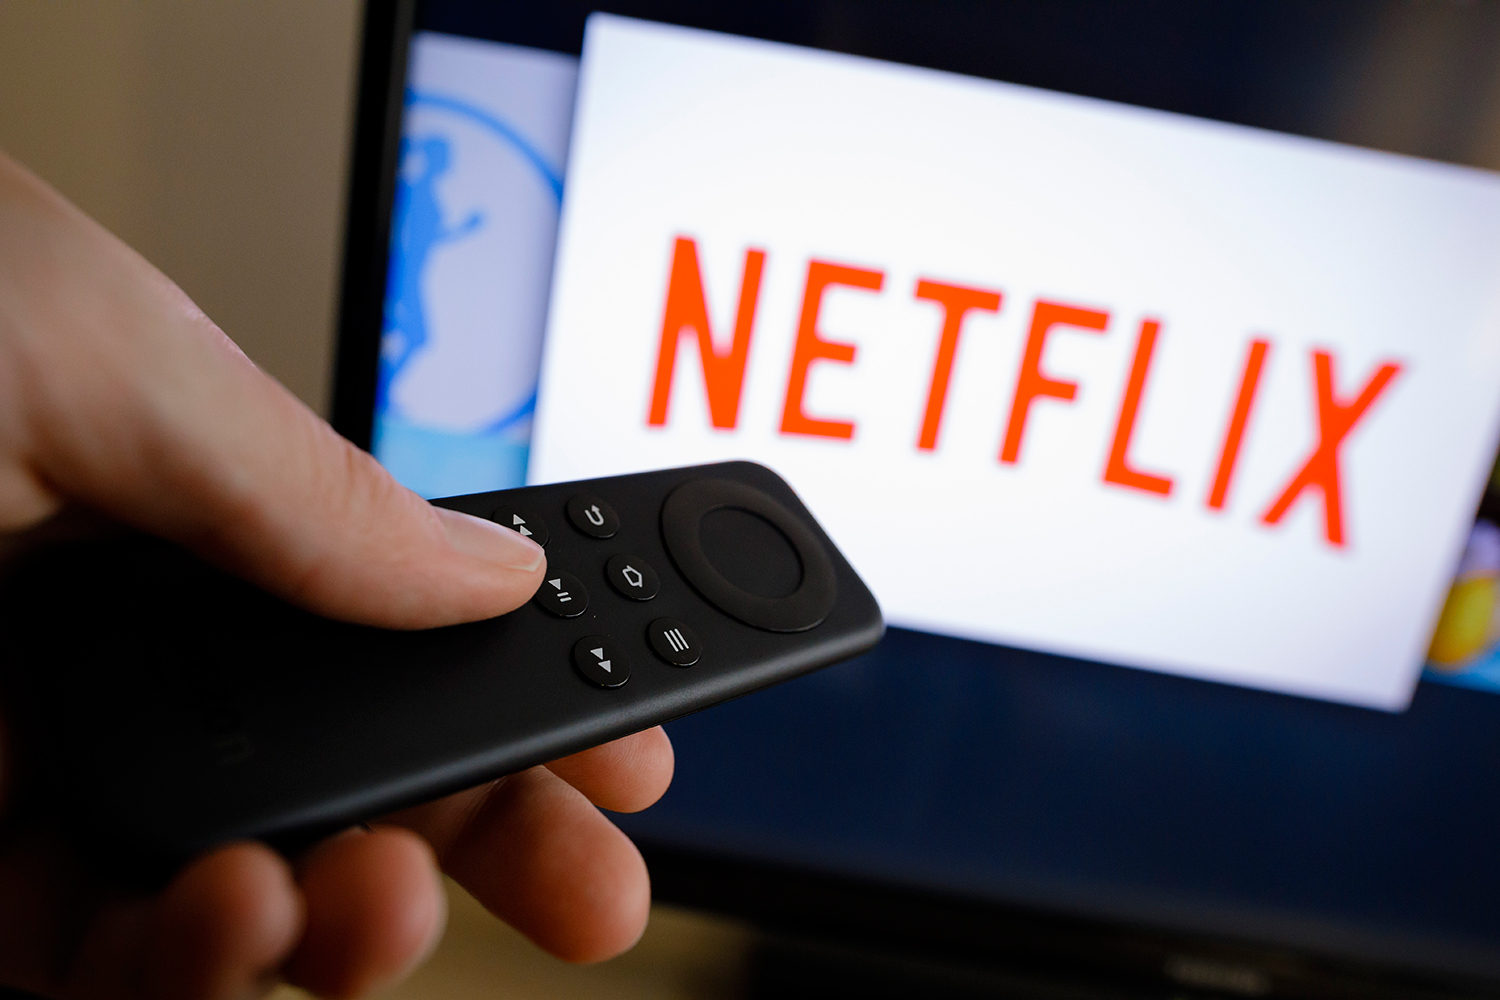 There's a New Netflix Email Scam Going Around—Here's How to Spot It